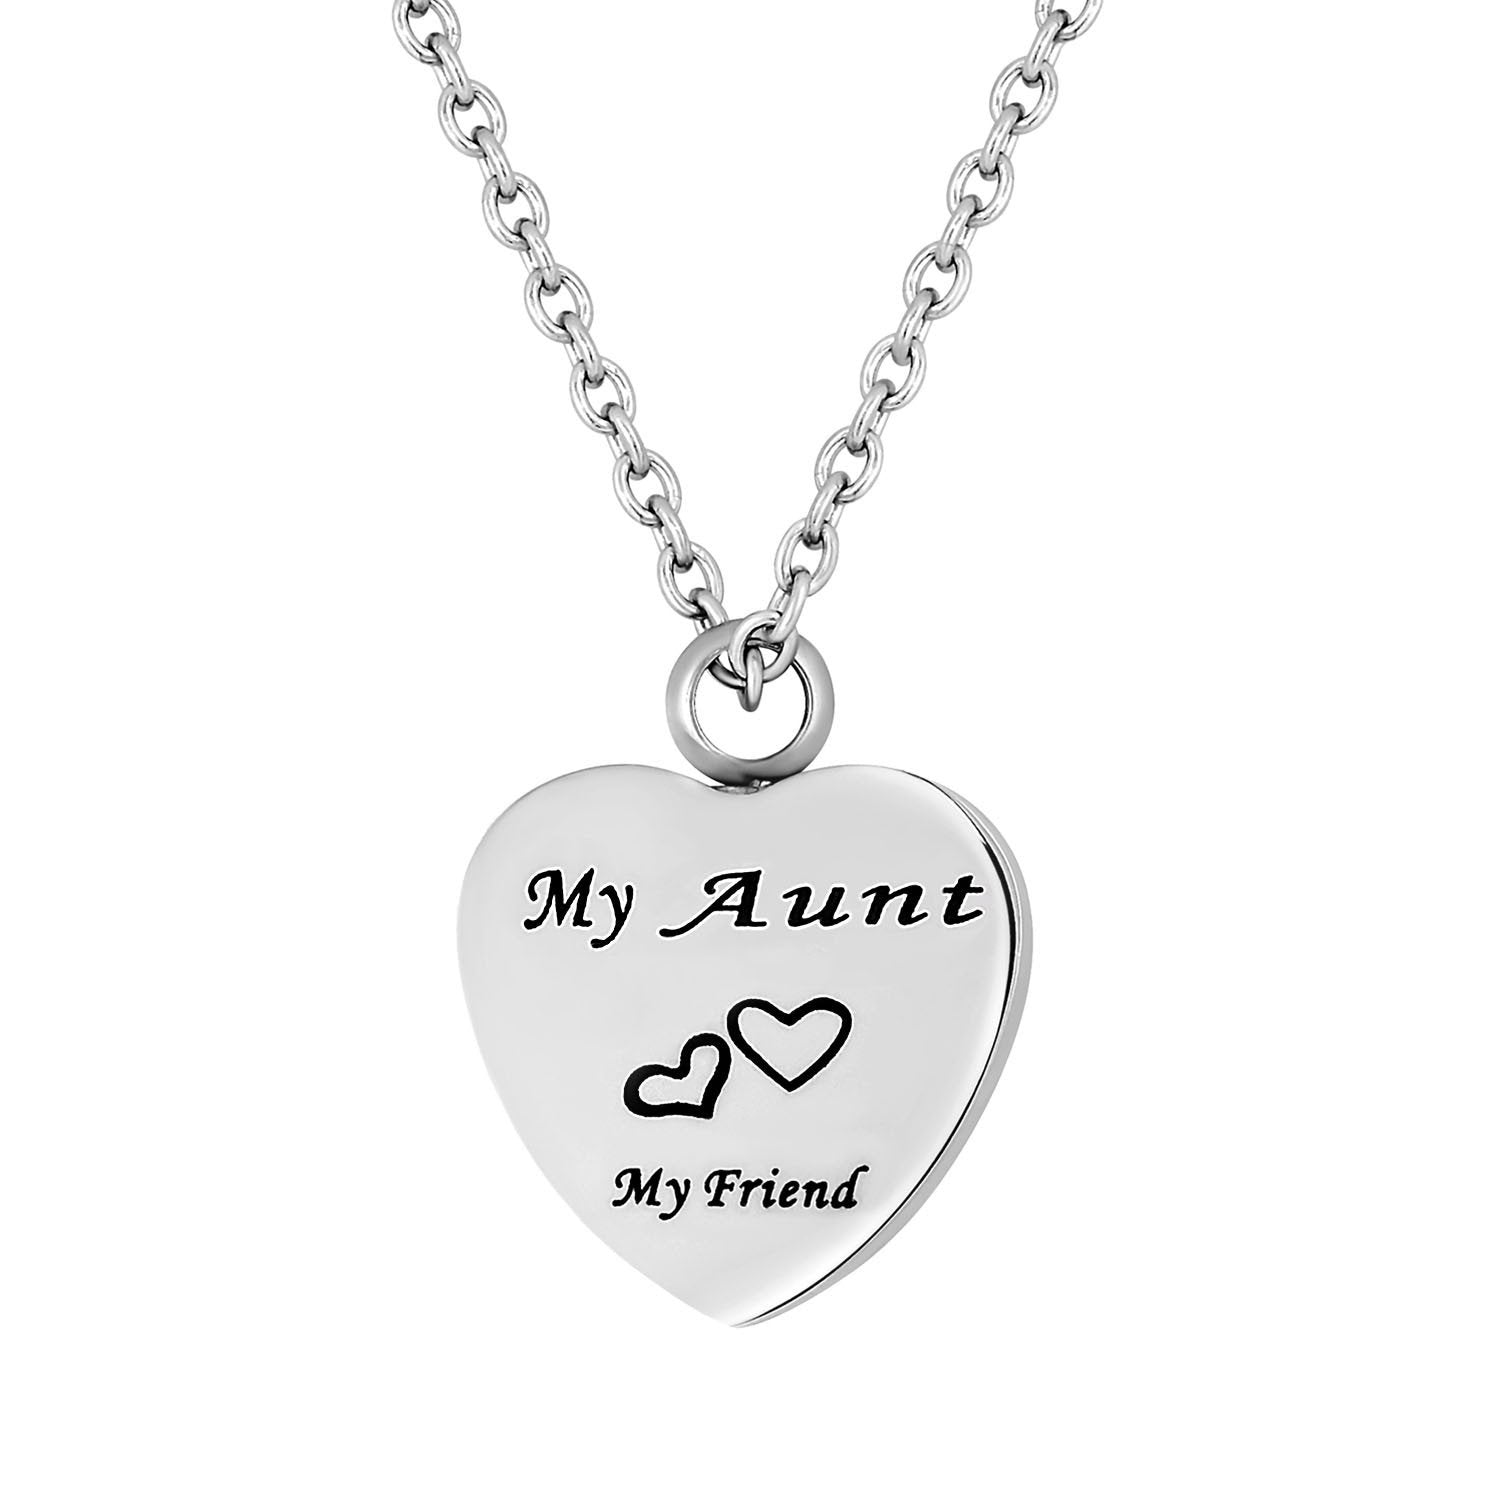 on only personalized gifts aunt best hand images tracy cooler gift designs mom ttayandesigns stamped jewelry tayan like necklace